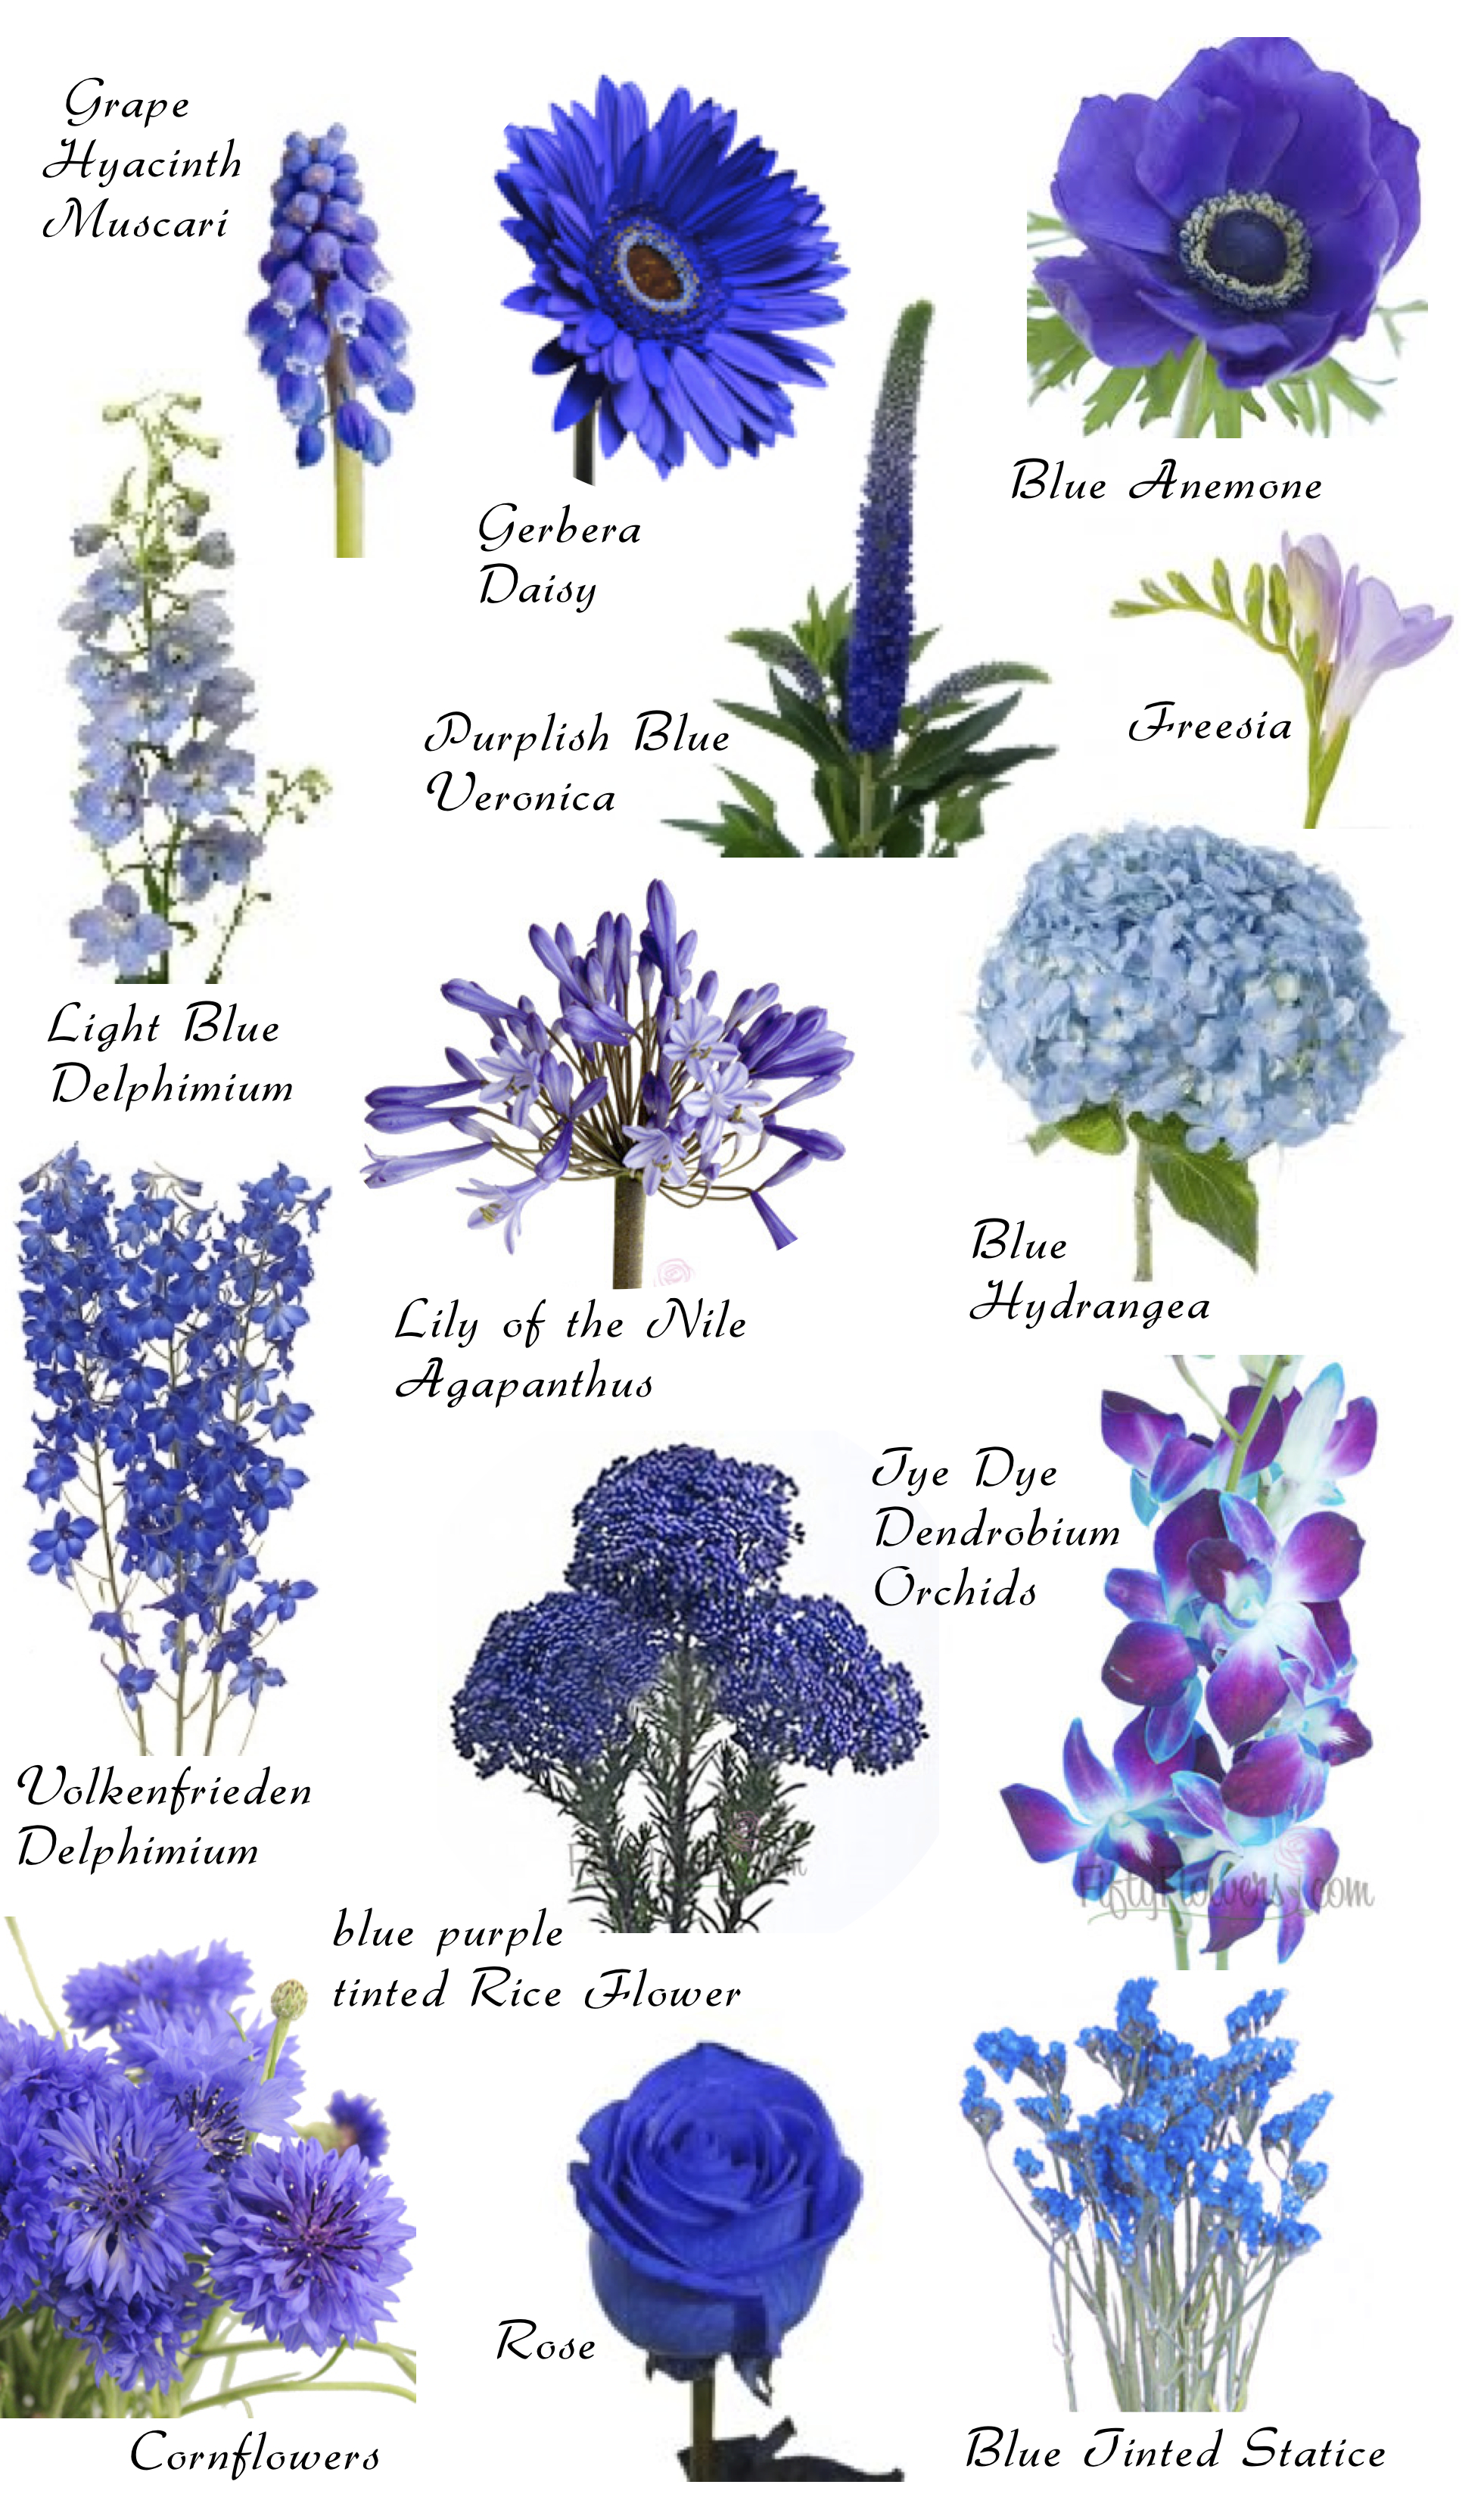 flower glossary | Say it with Flower | Pinterest | Floral ...